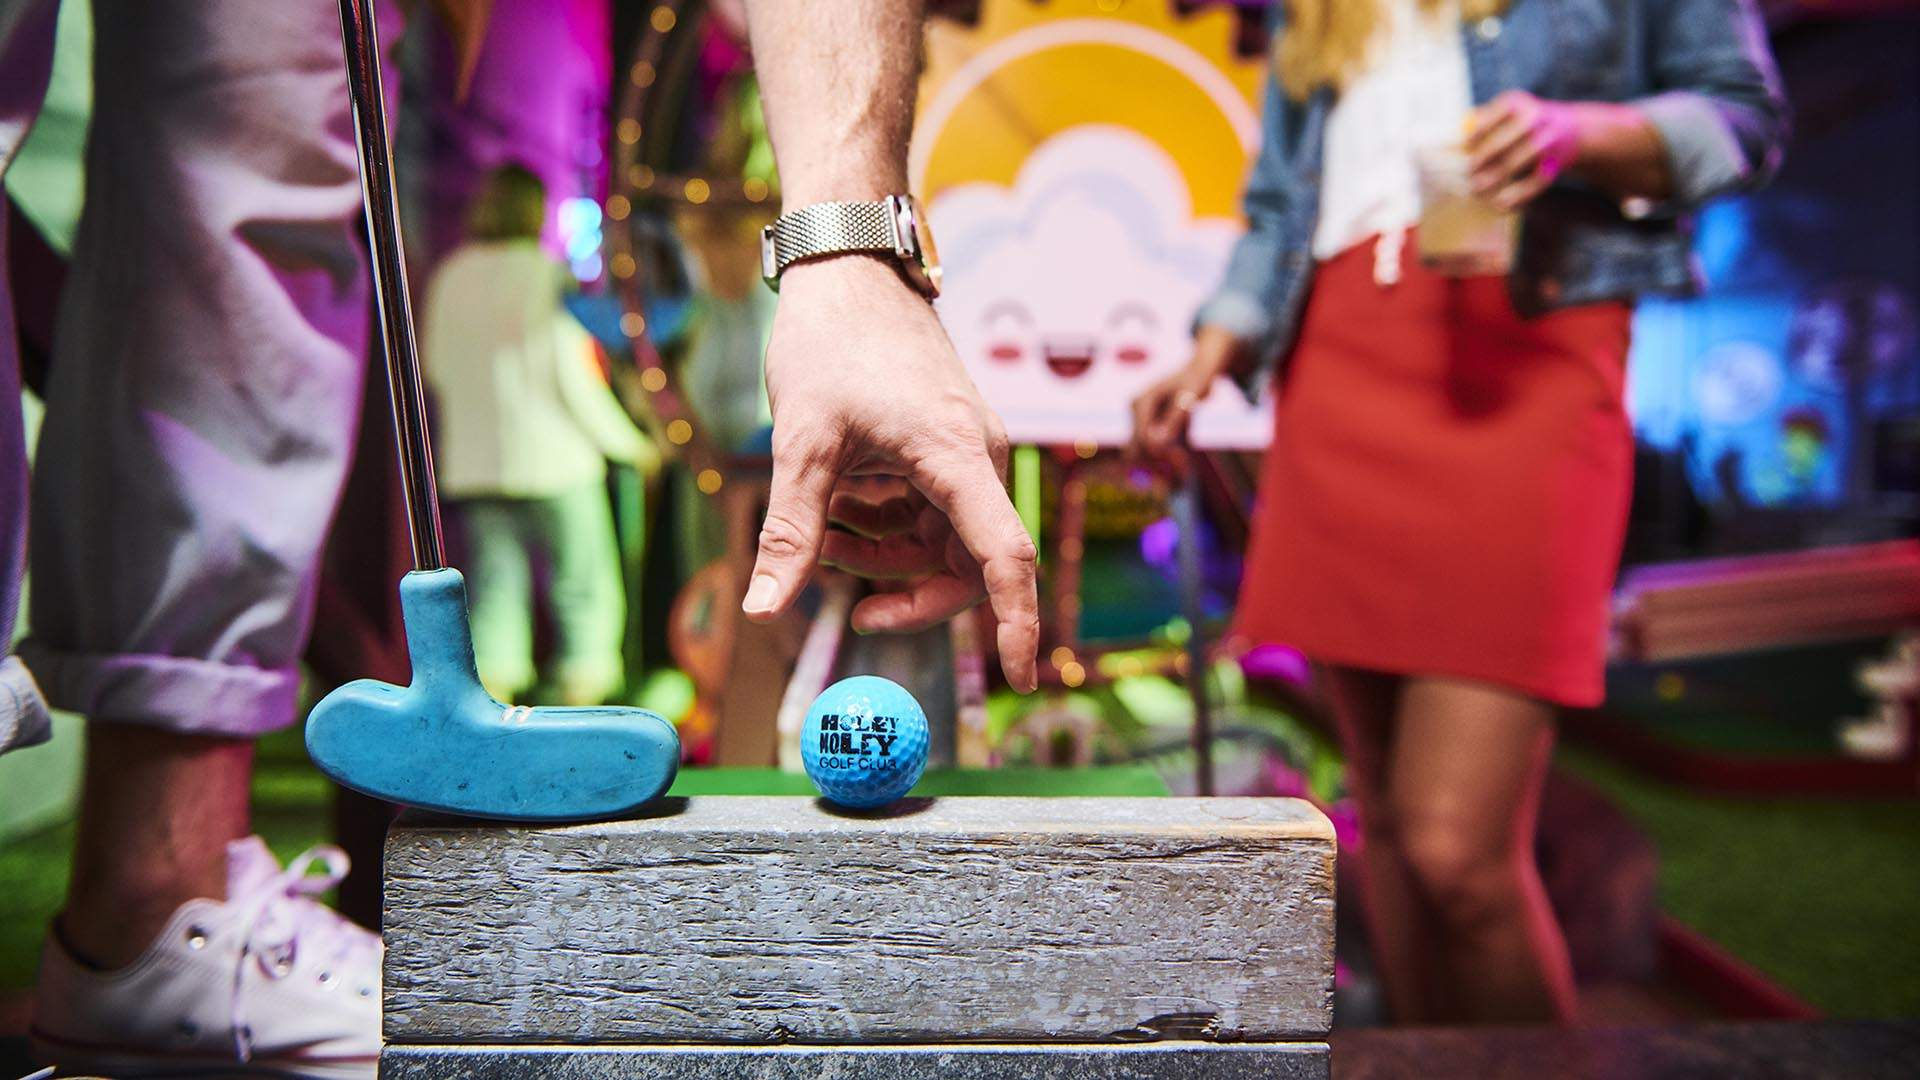 Holey Moley Is Opening Its Second Brisbane Mini-Golf Bar in the CBD